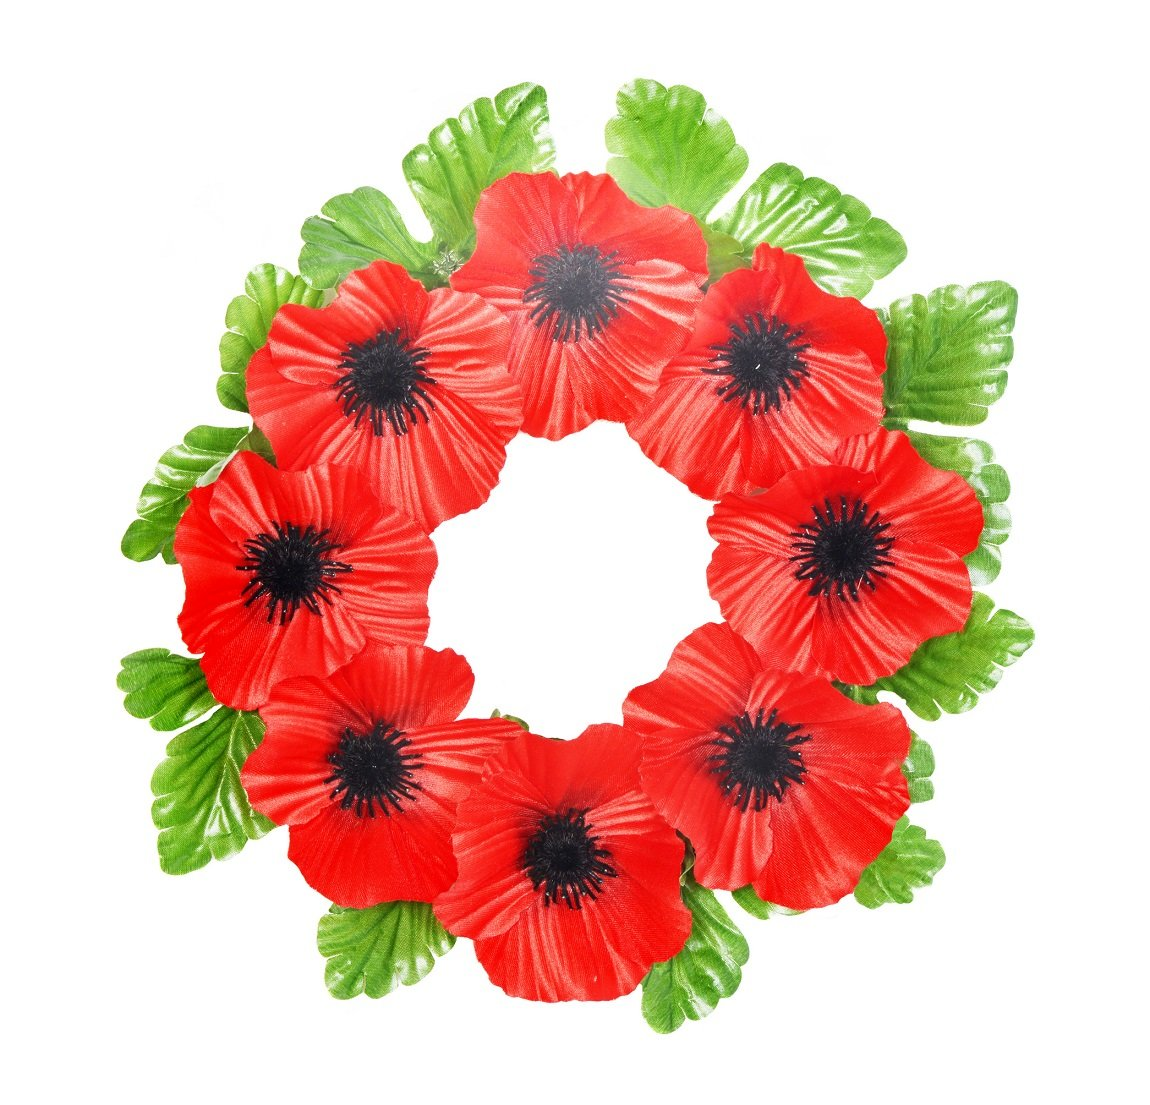 Artificial Poppy Wreath 25cm Diameter with 8 Flowers FB300SY